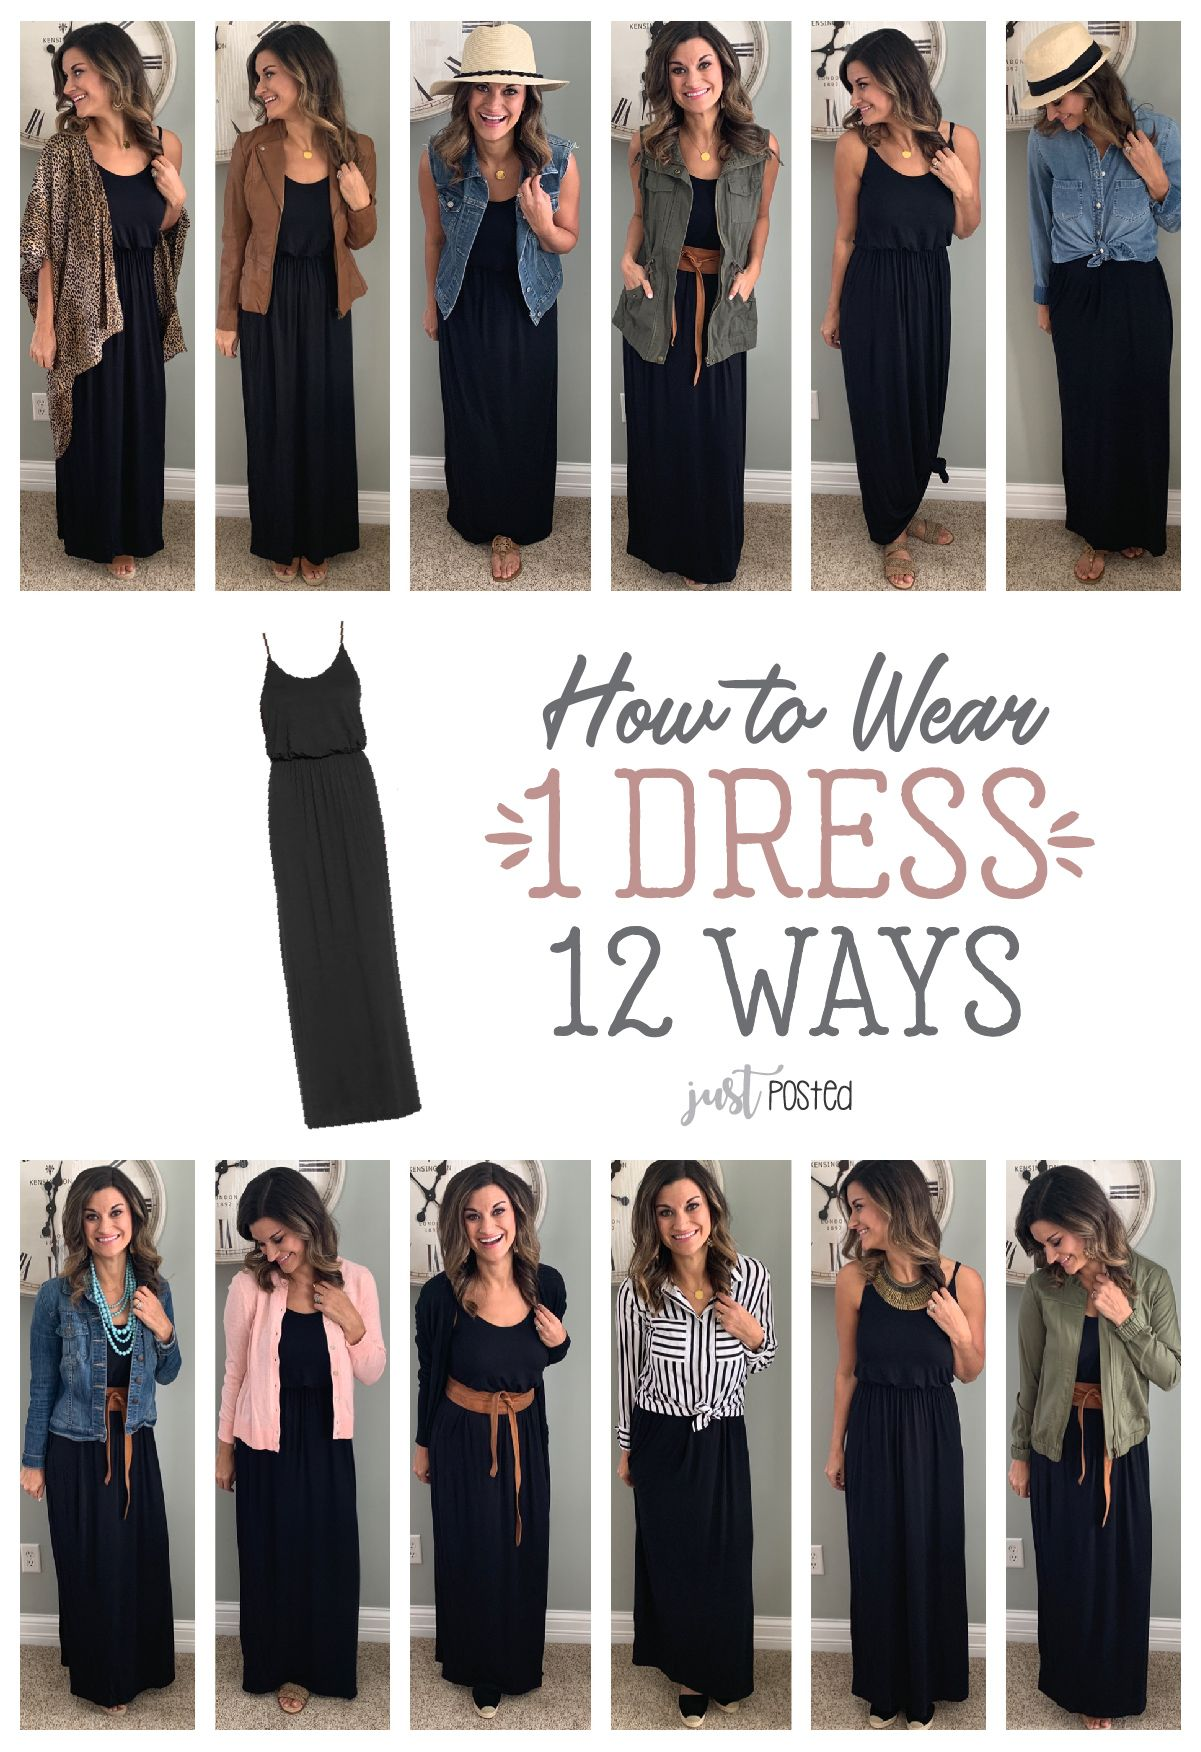 62166cf39a1 How to wear and style 1 maxi dress 12 different ways! This black maxi dress